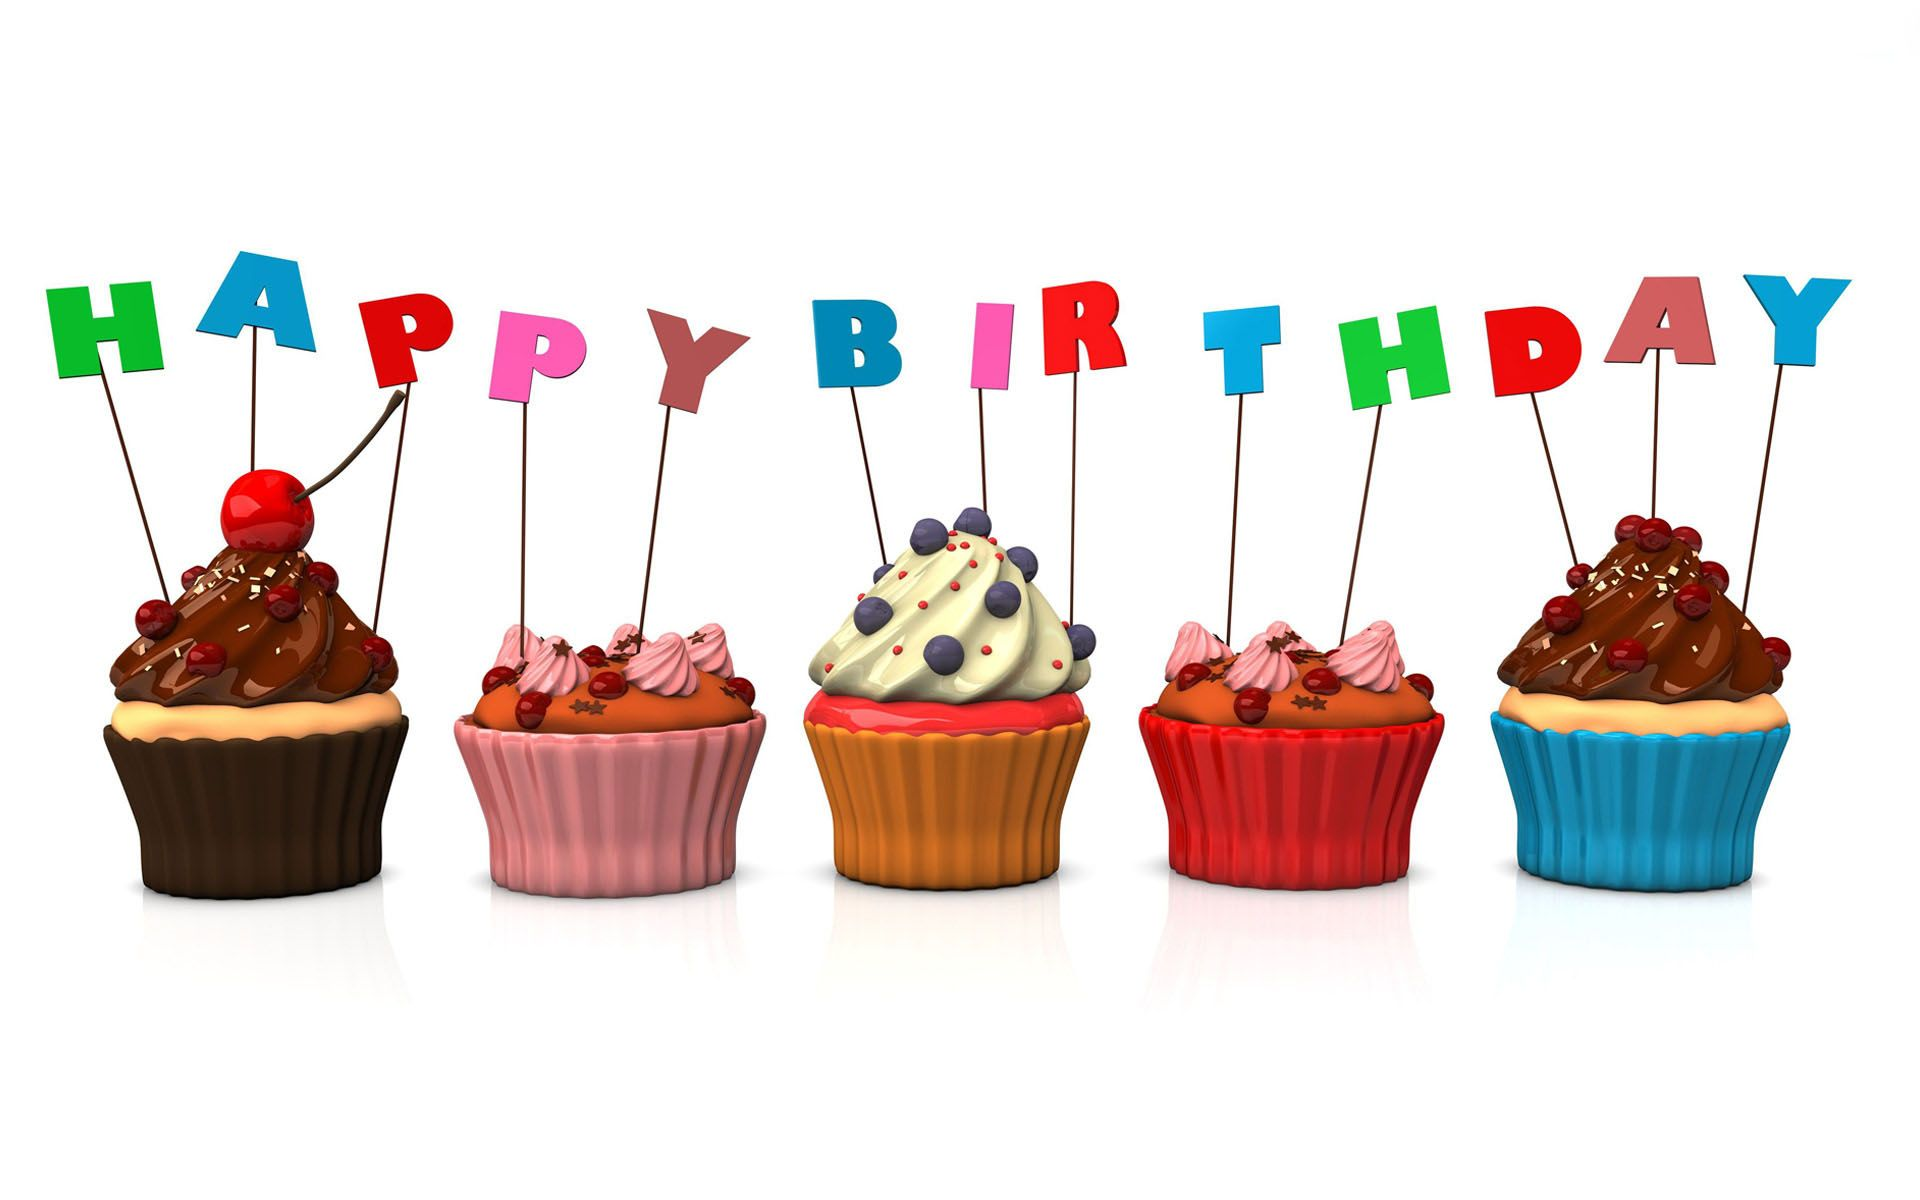 Happy birthday images hd google search happy birthday cake happy birthday kristyandbryce Gallery